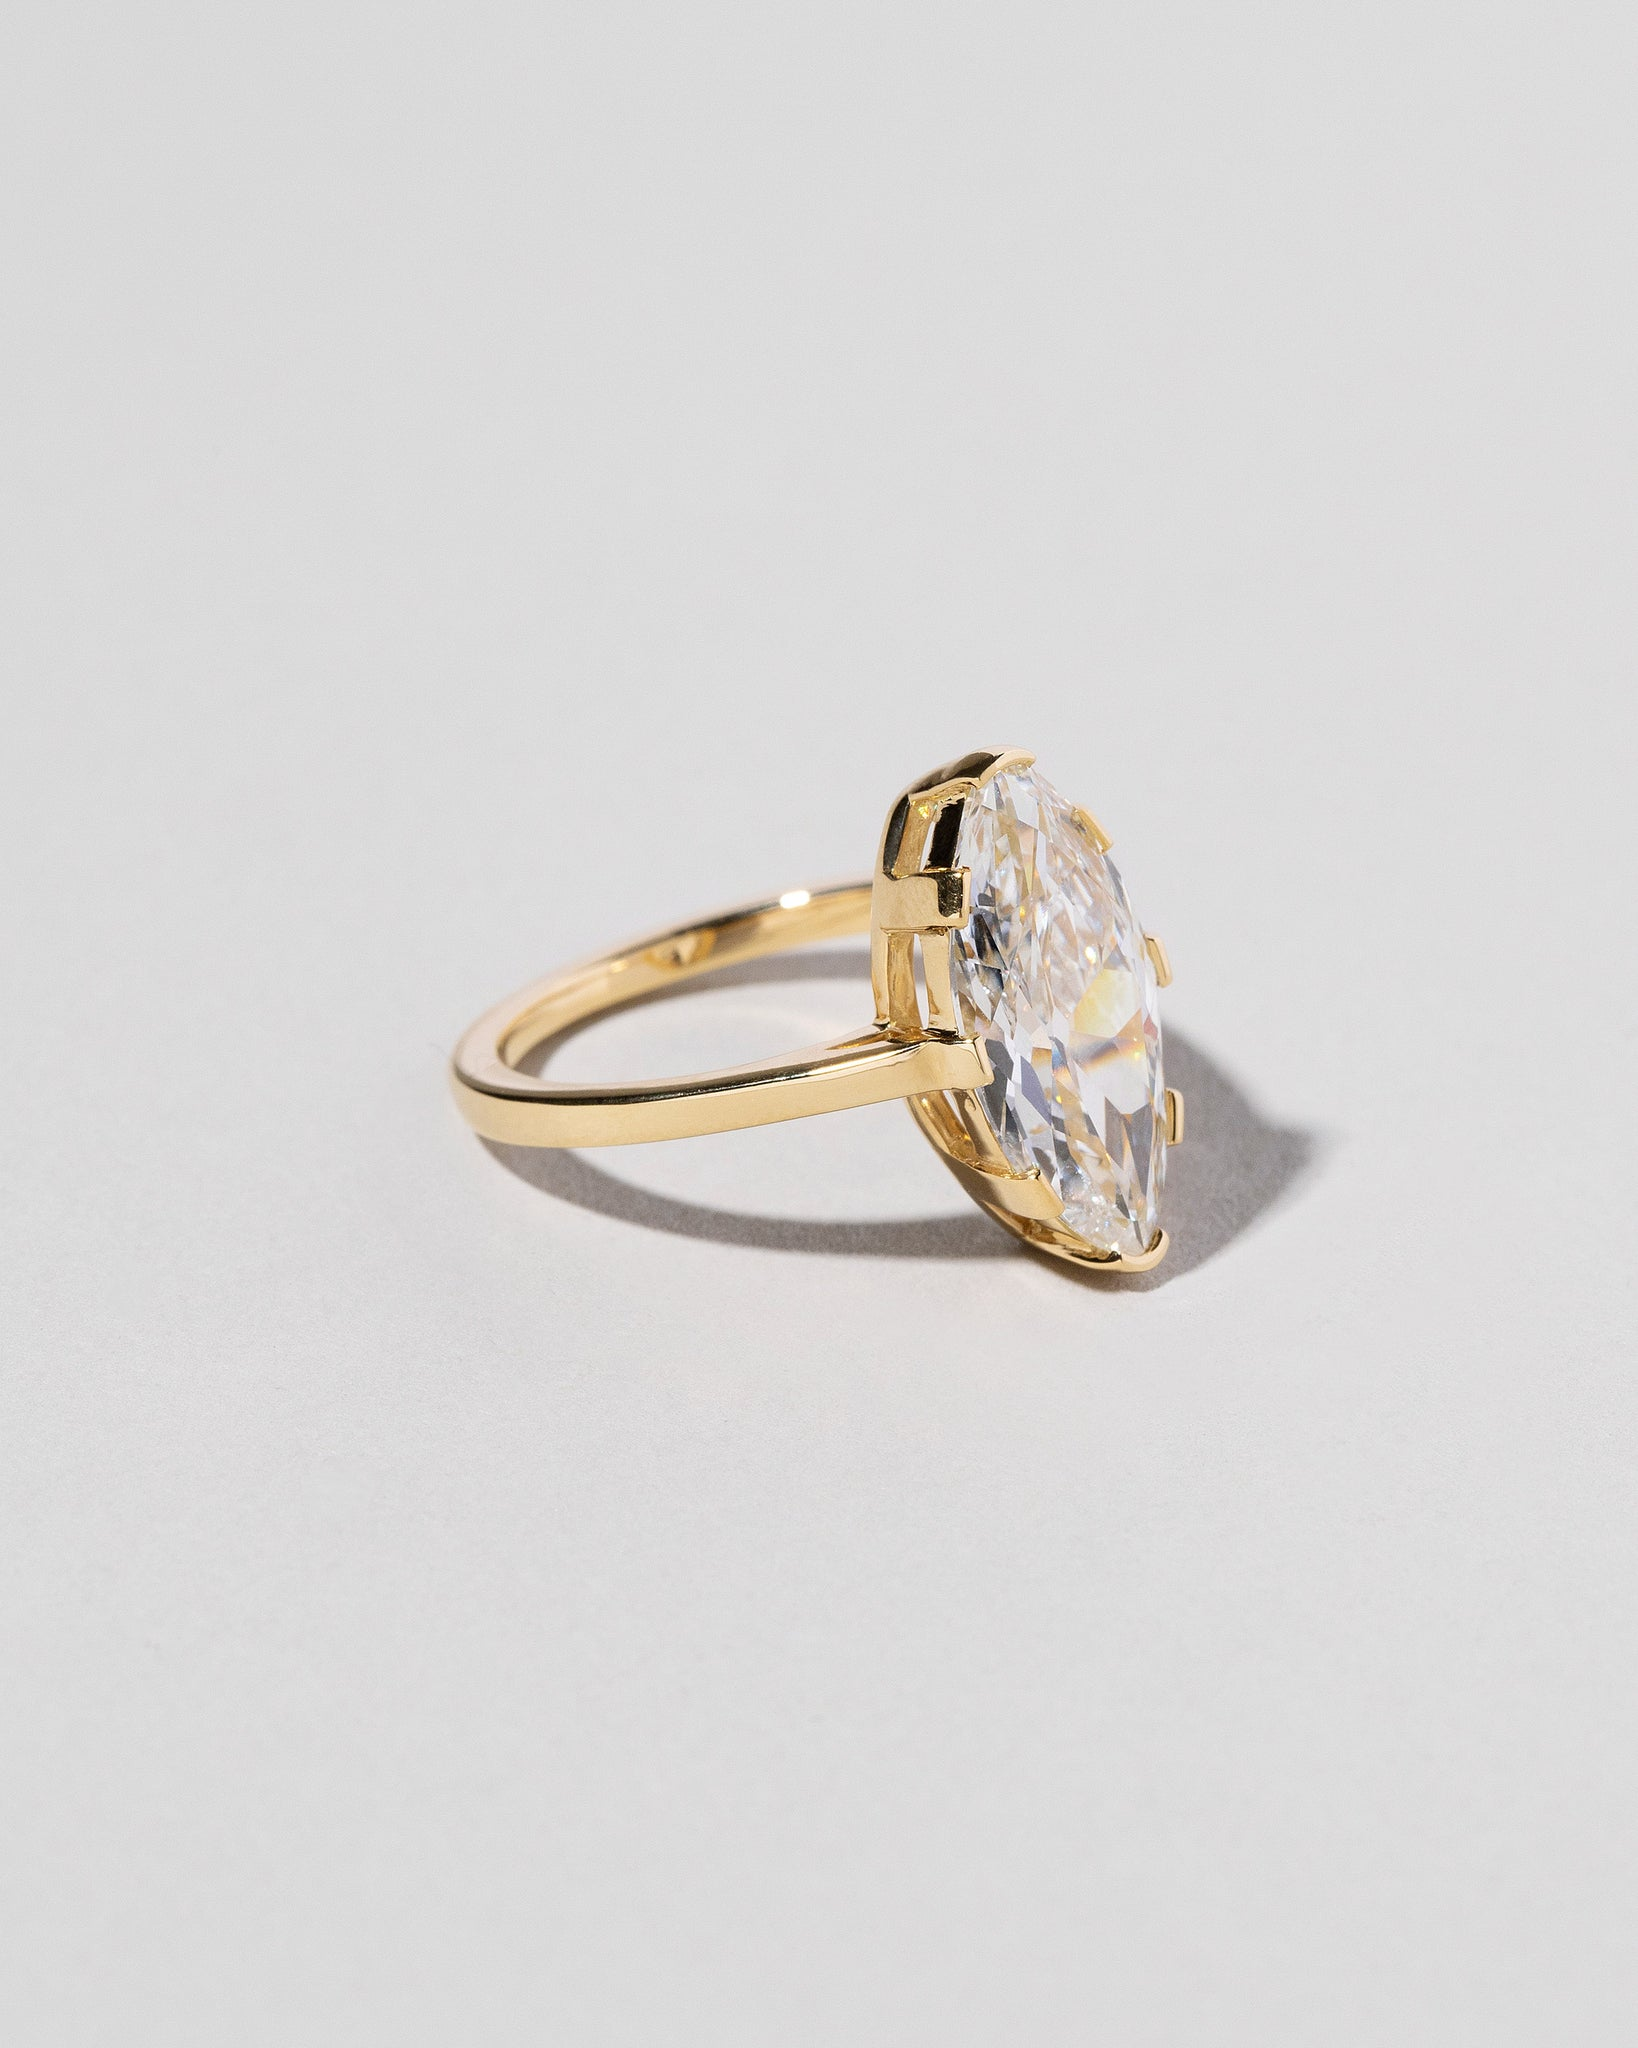 Right view of North-South Navette Diamond Solitaire Ring